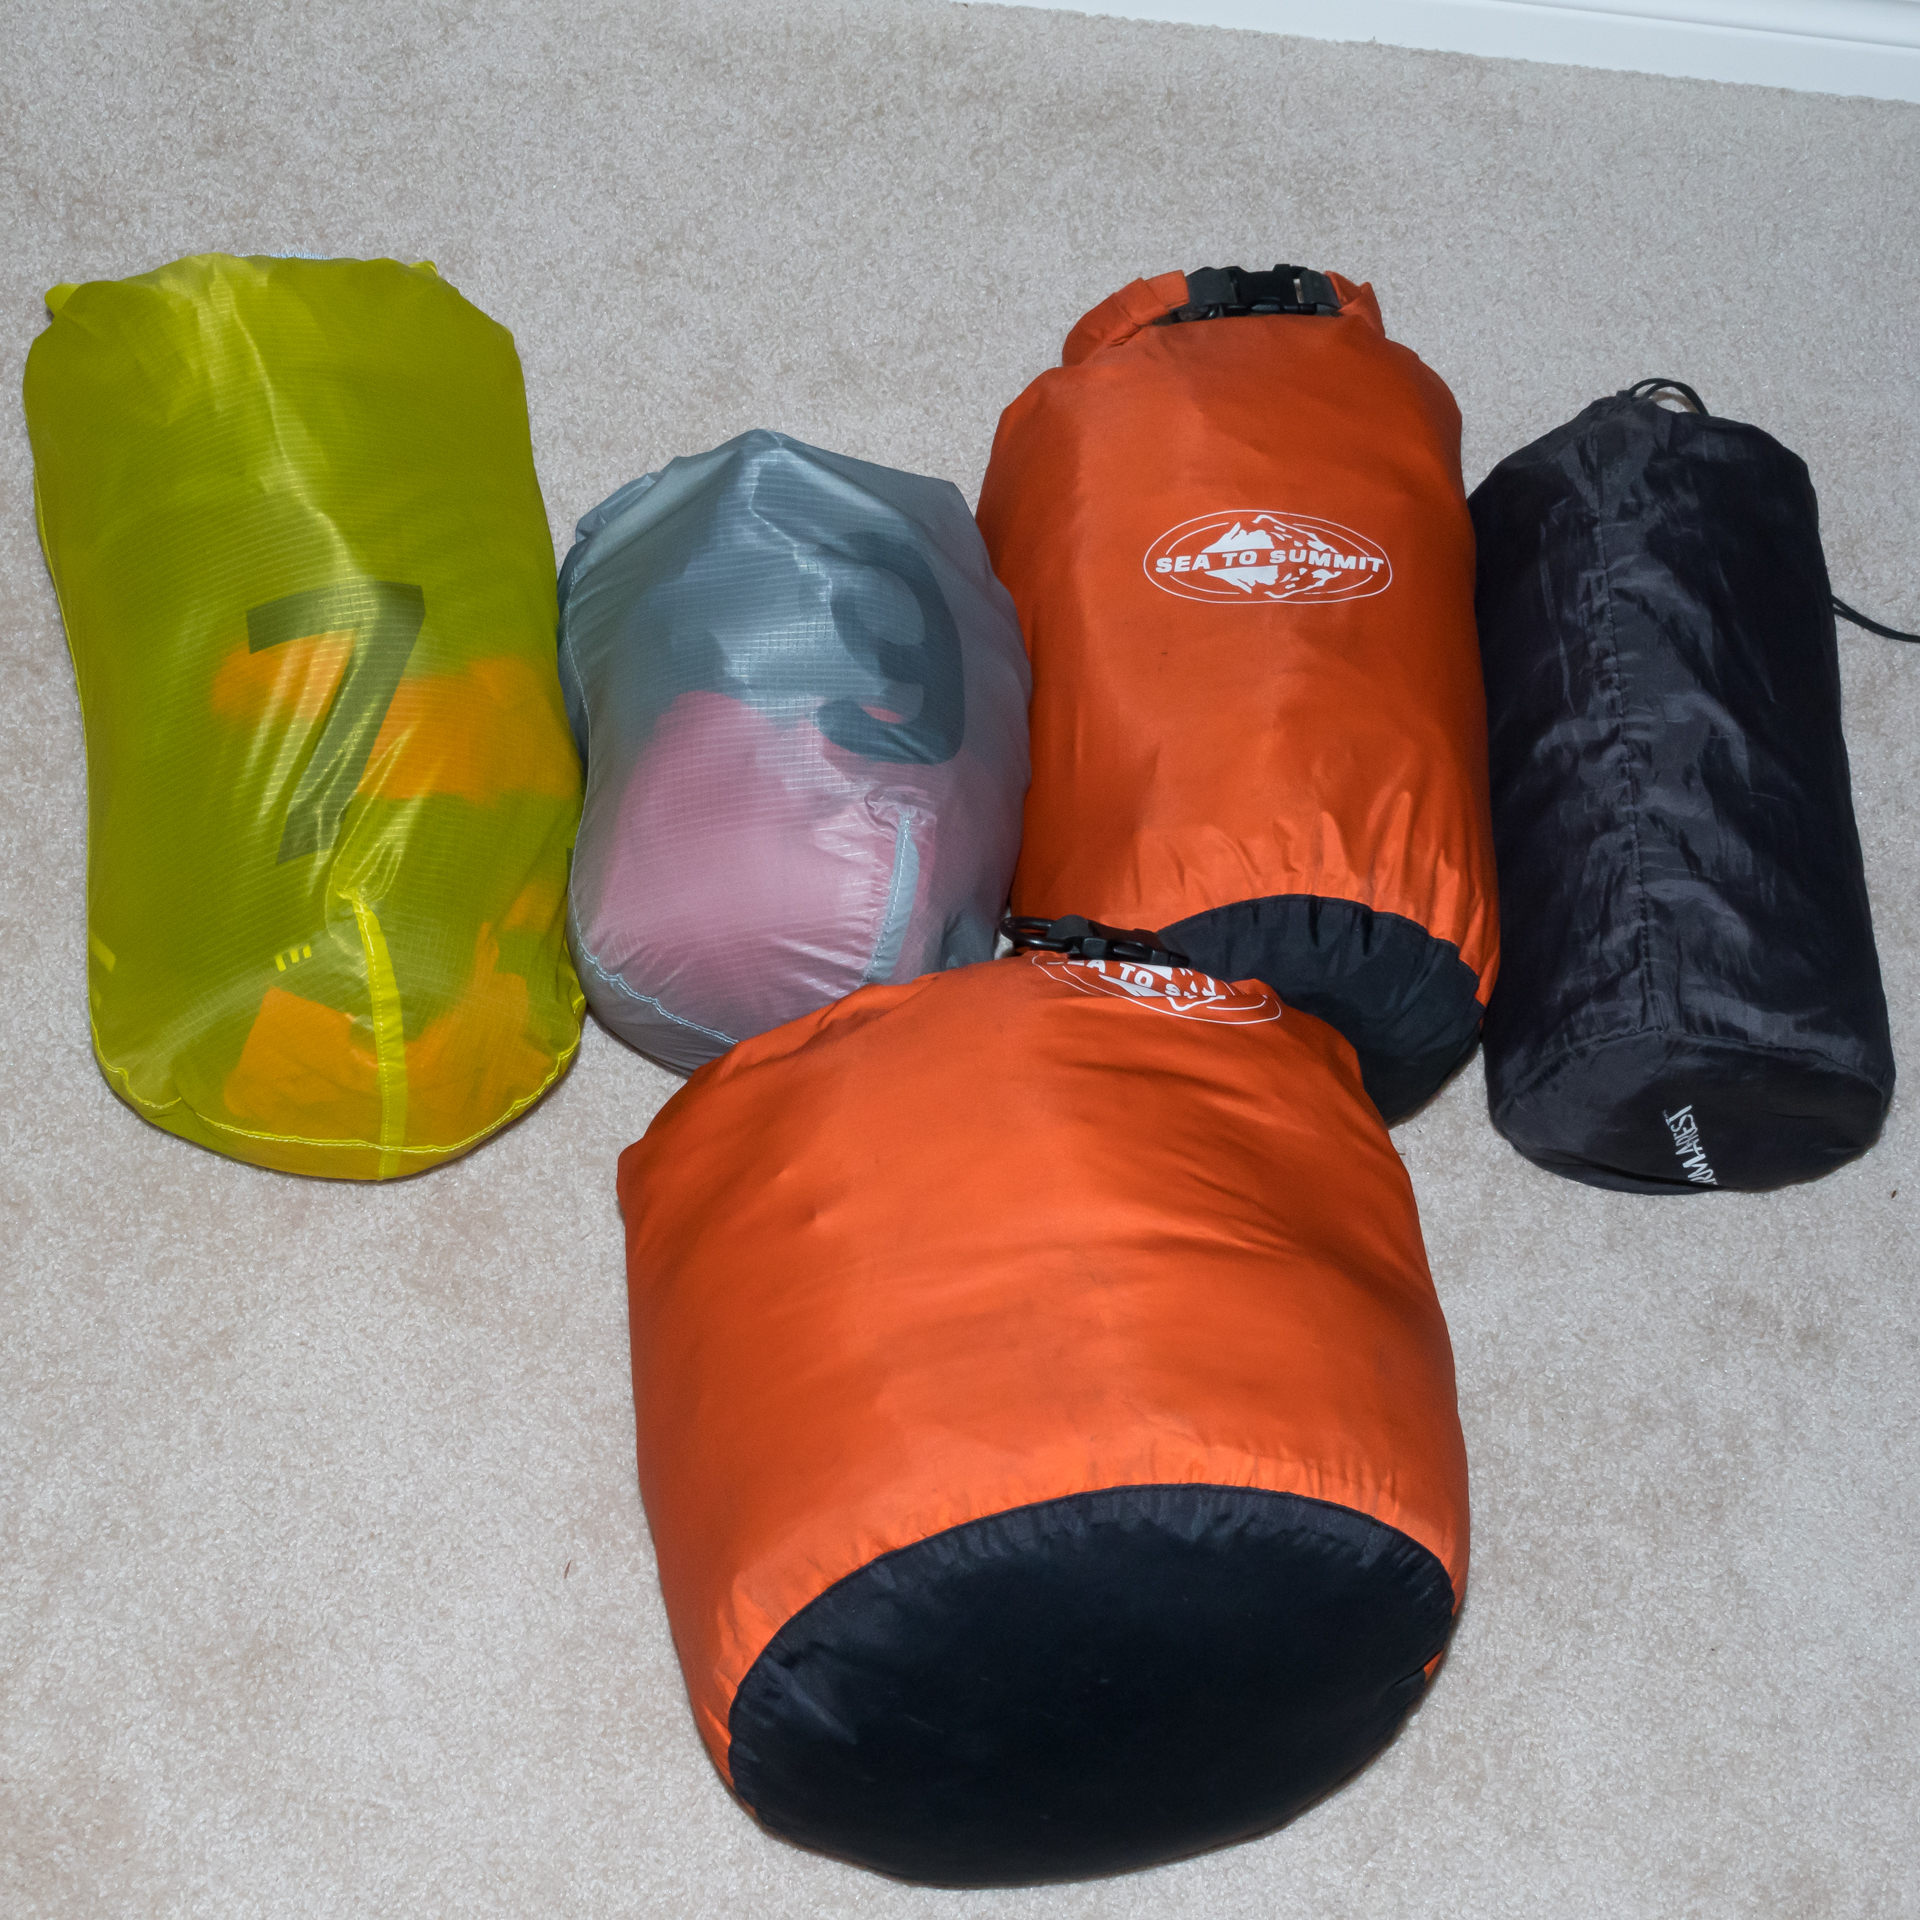 The top four bags fit into my backpack, which in turn fits in my duffel bag. The 7- and 9-liter stuff sacks have clothing. The small Orange dry Bag holds My tent and fly. The black bag is my sleeping pad. The large orange dry bag holds my sleeping bag.